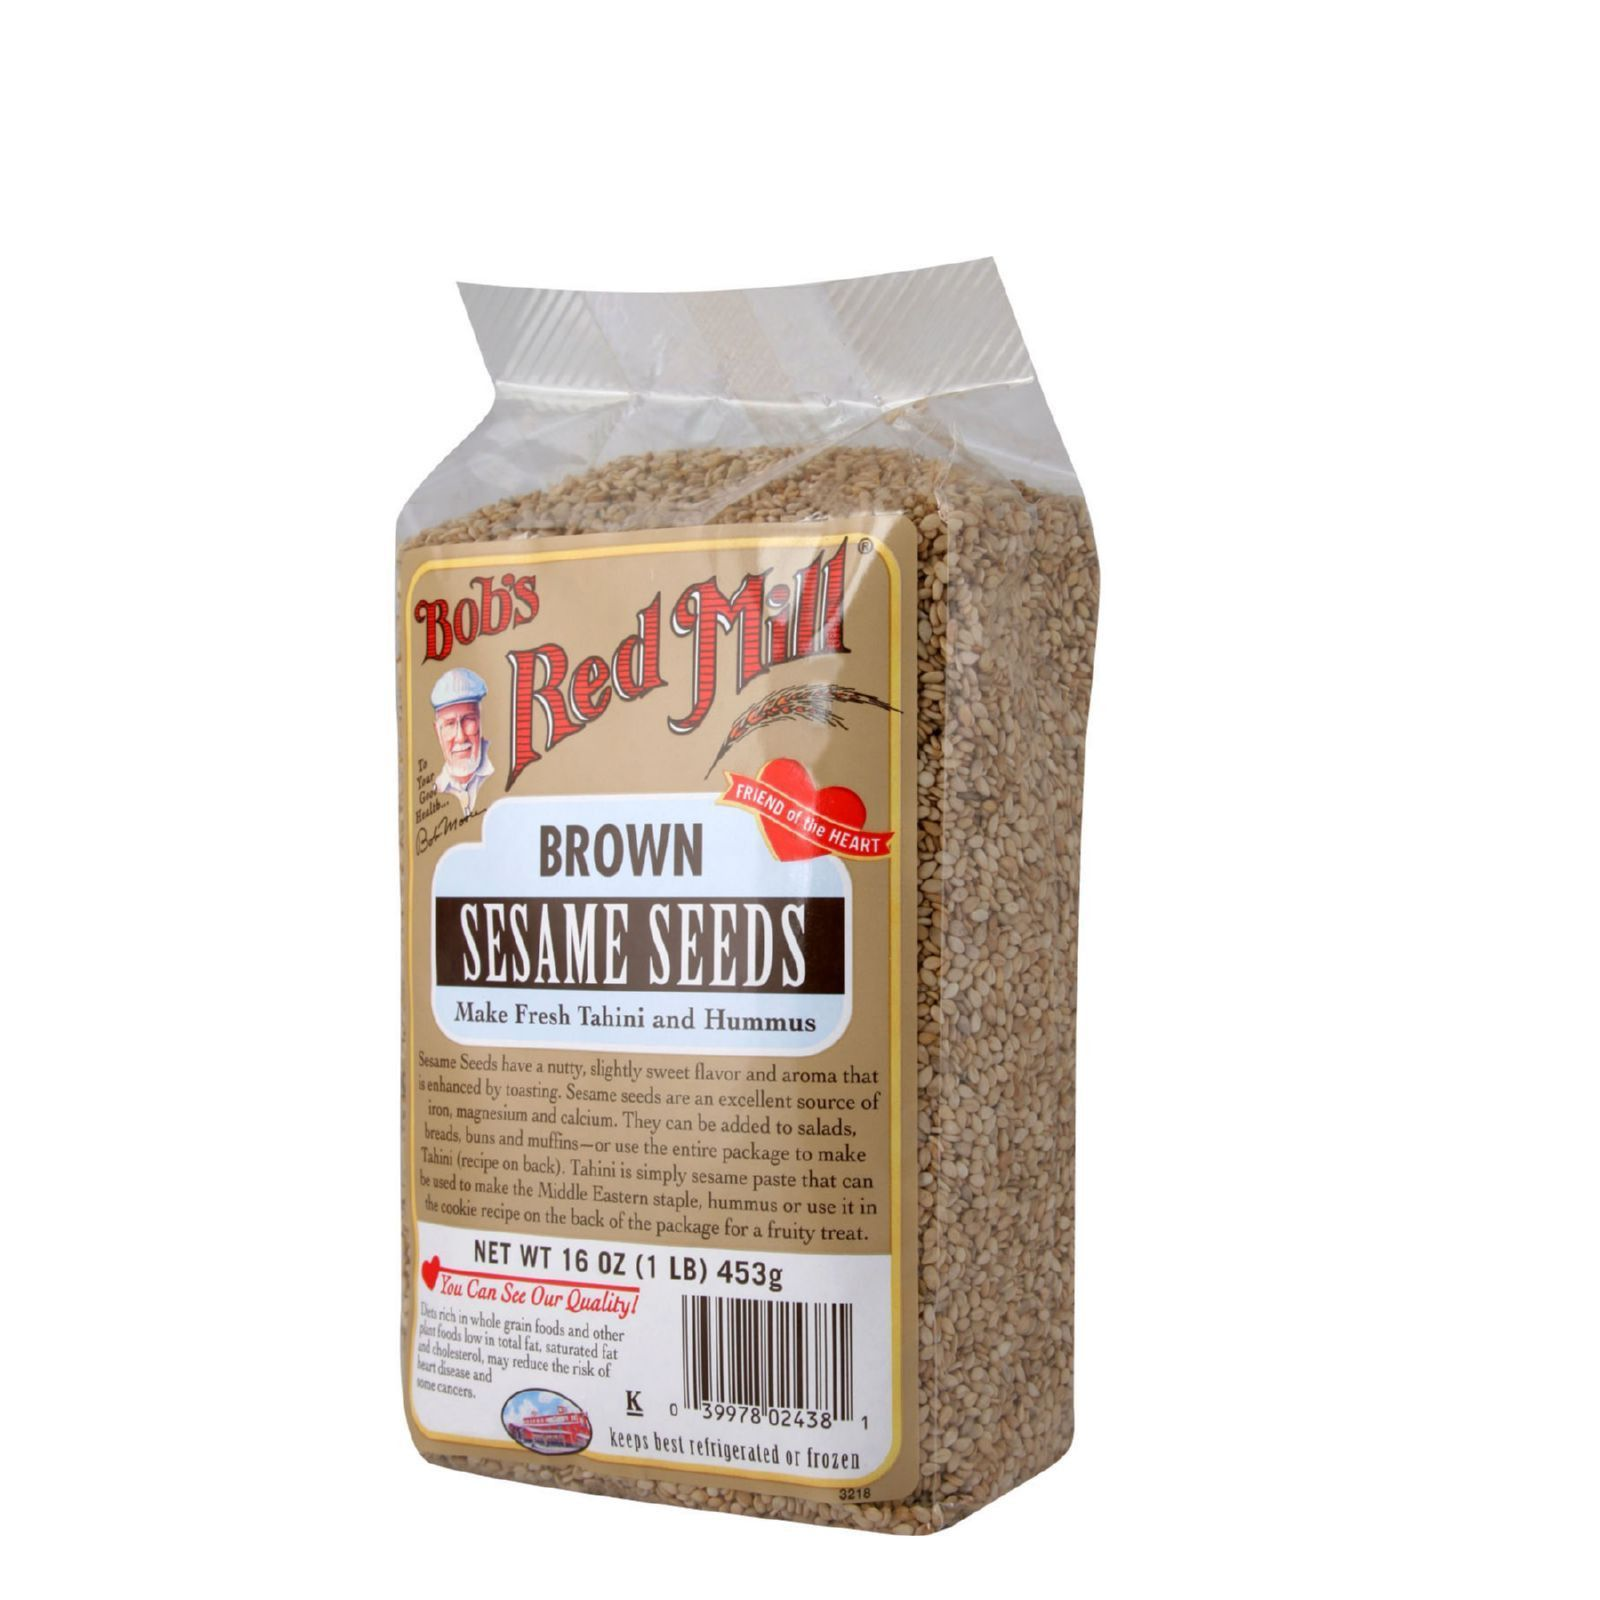 Bob's Red Mill Brown Sesame Seeds 16 oz Case of 4